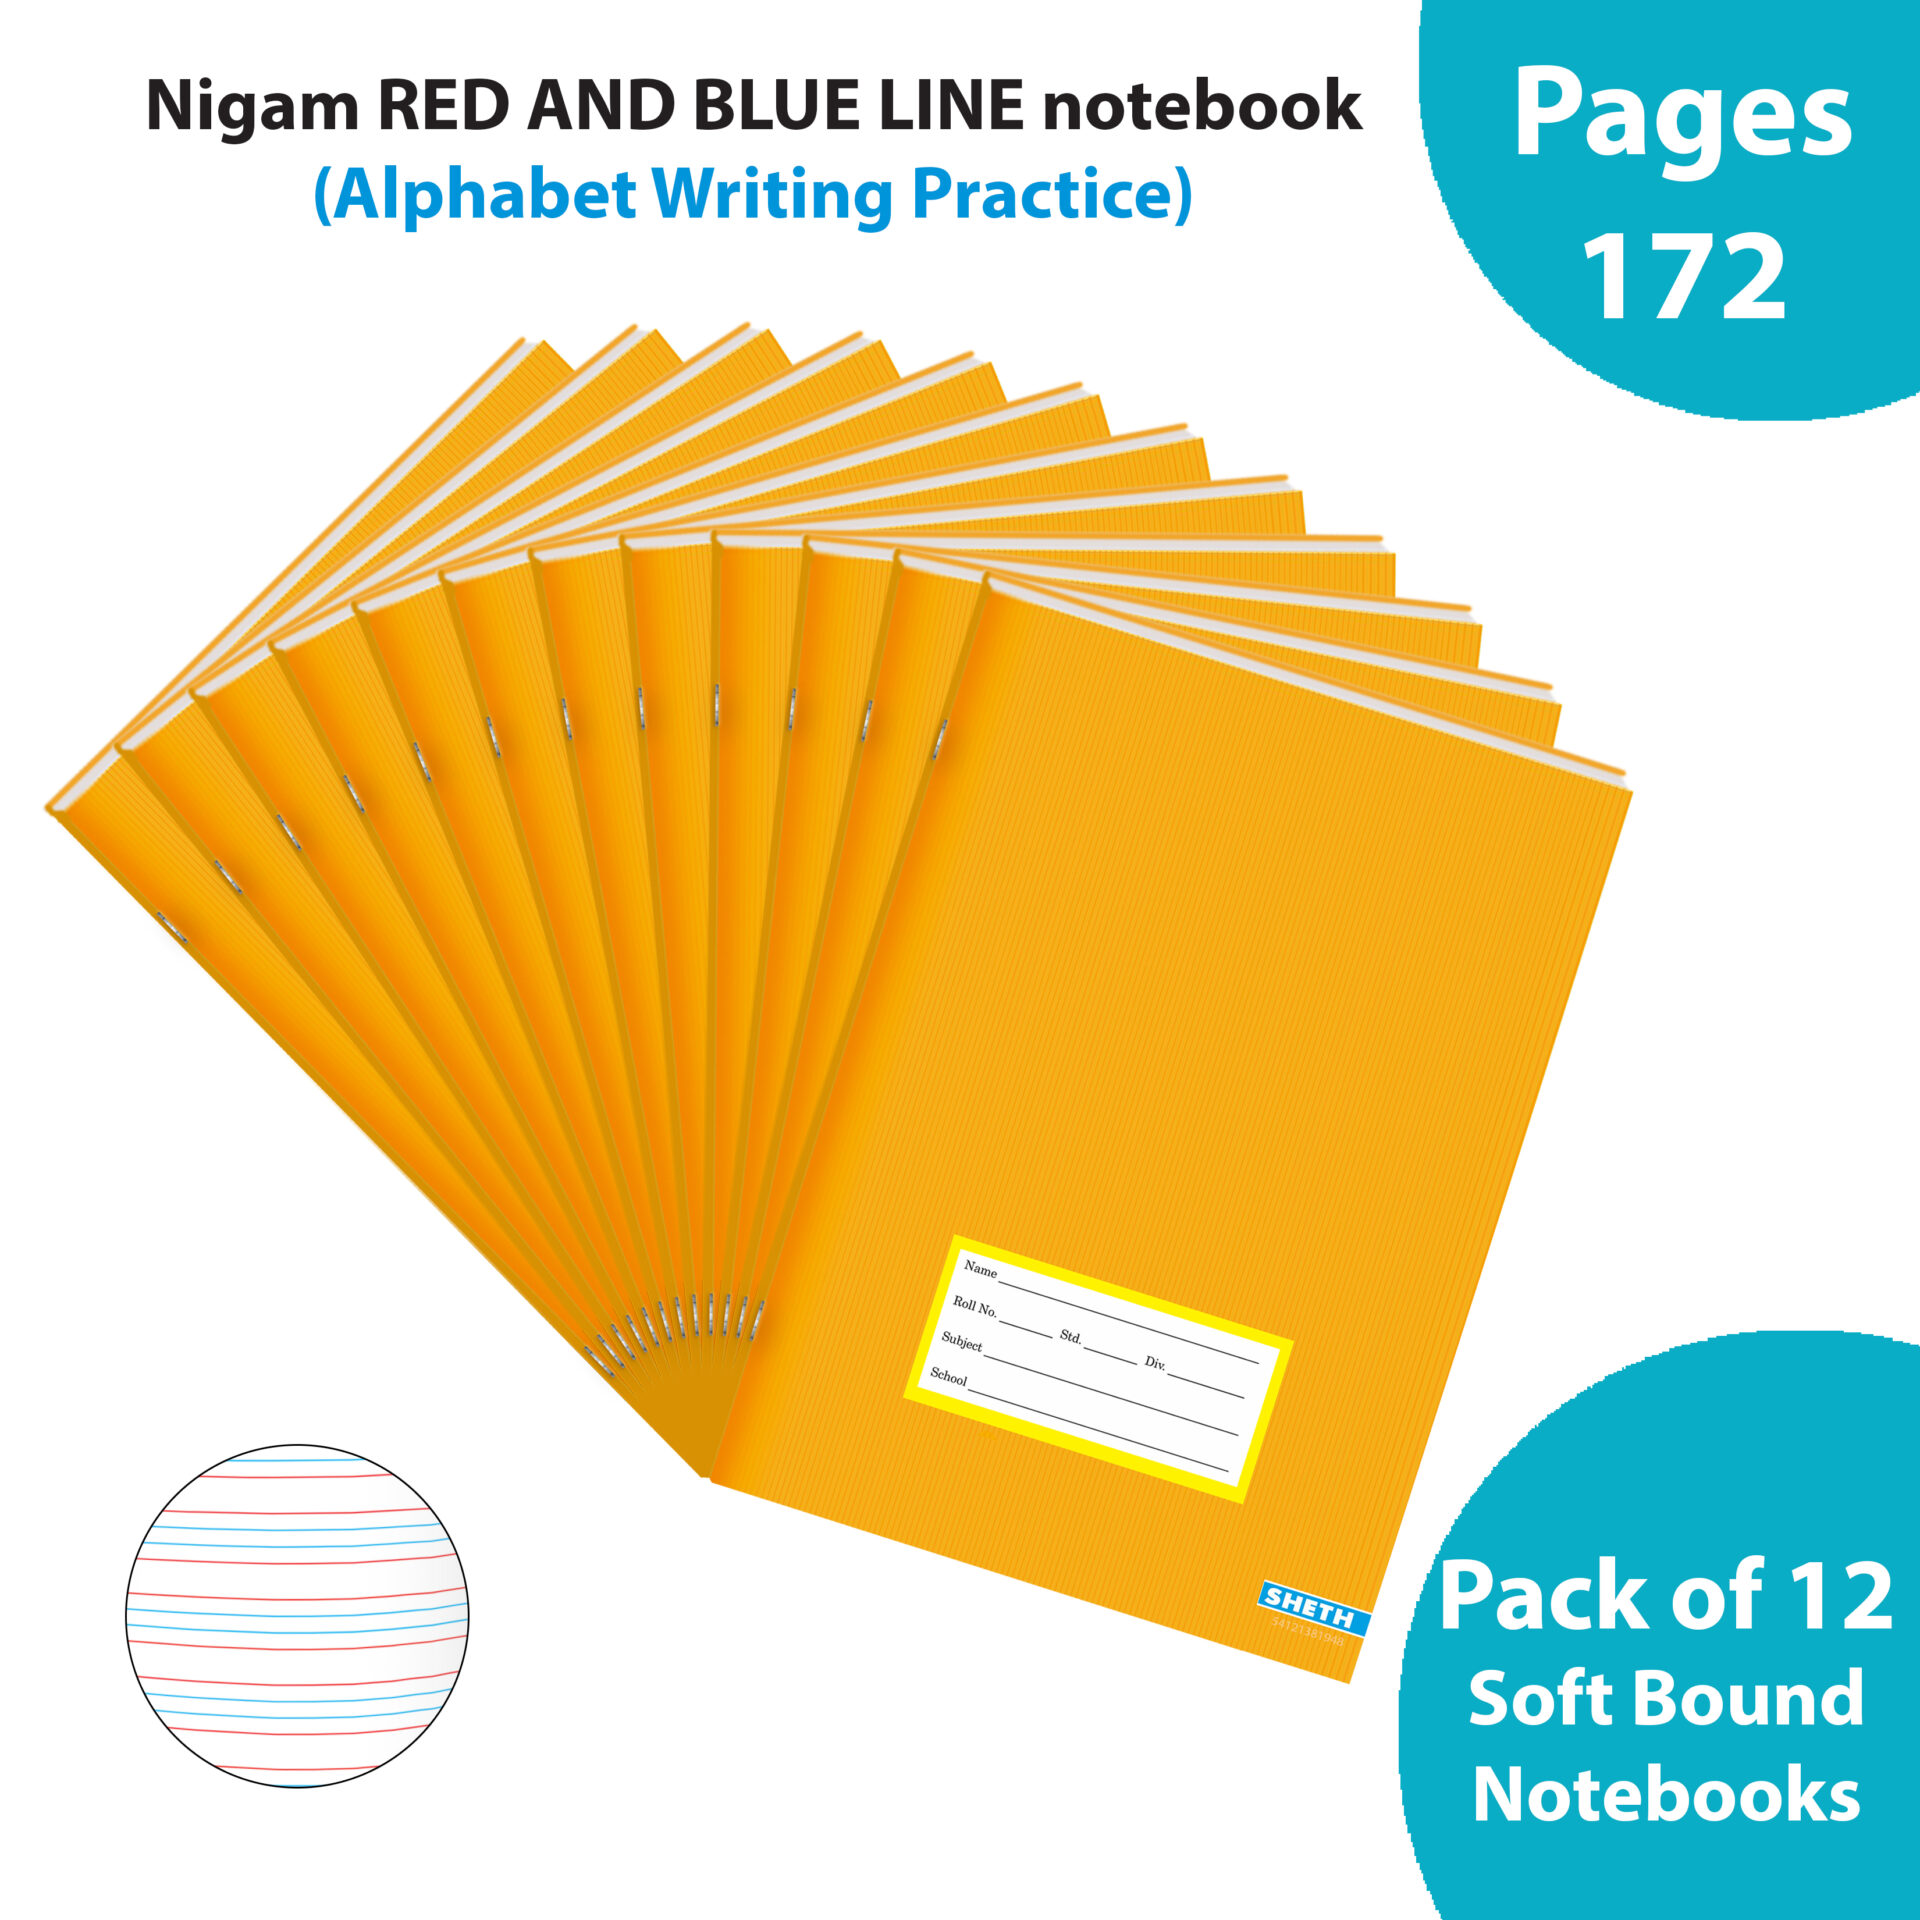 Nigam Red Blue Line A5 Note Book 172 Pages Soft Bound Set of 12 1